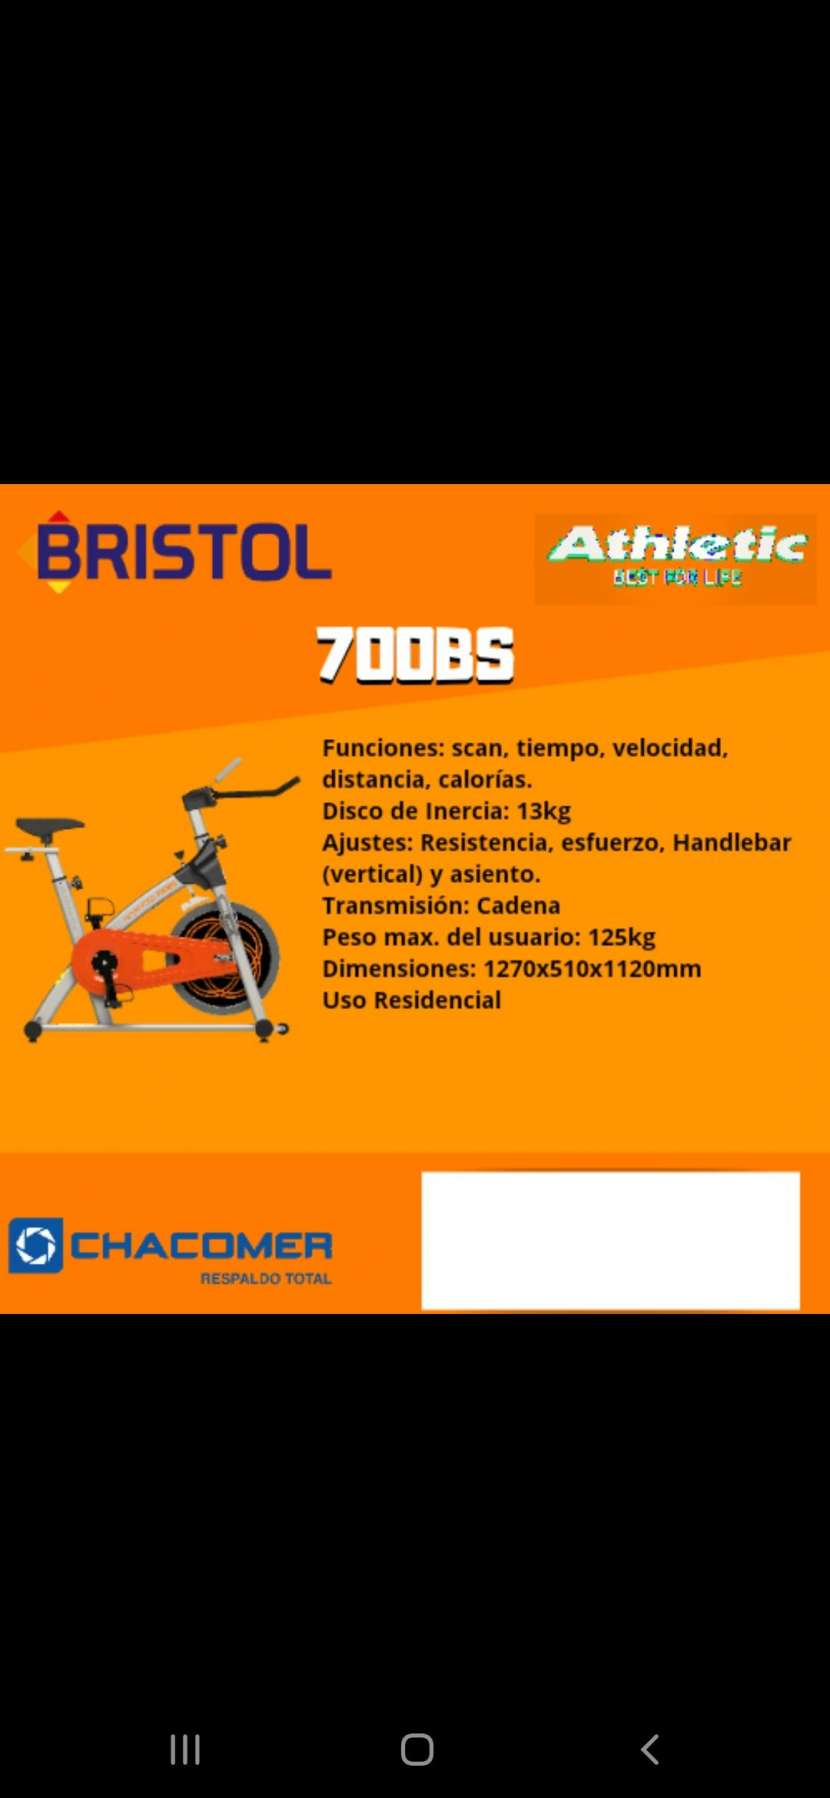 Bicicleta Spinning Athletic 700BS - 0